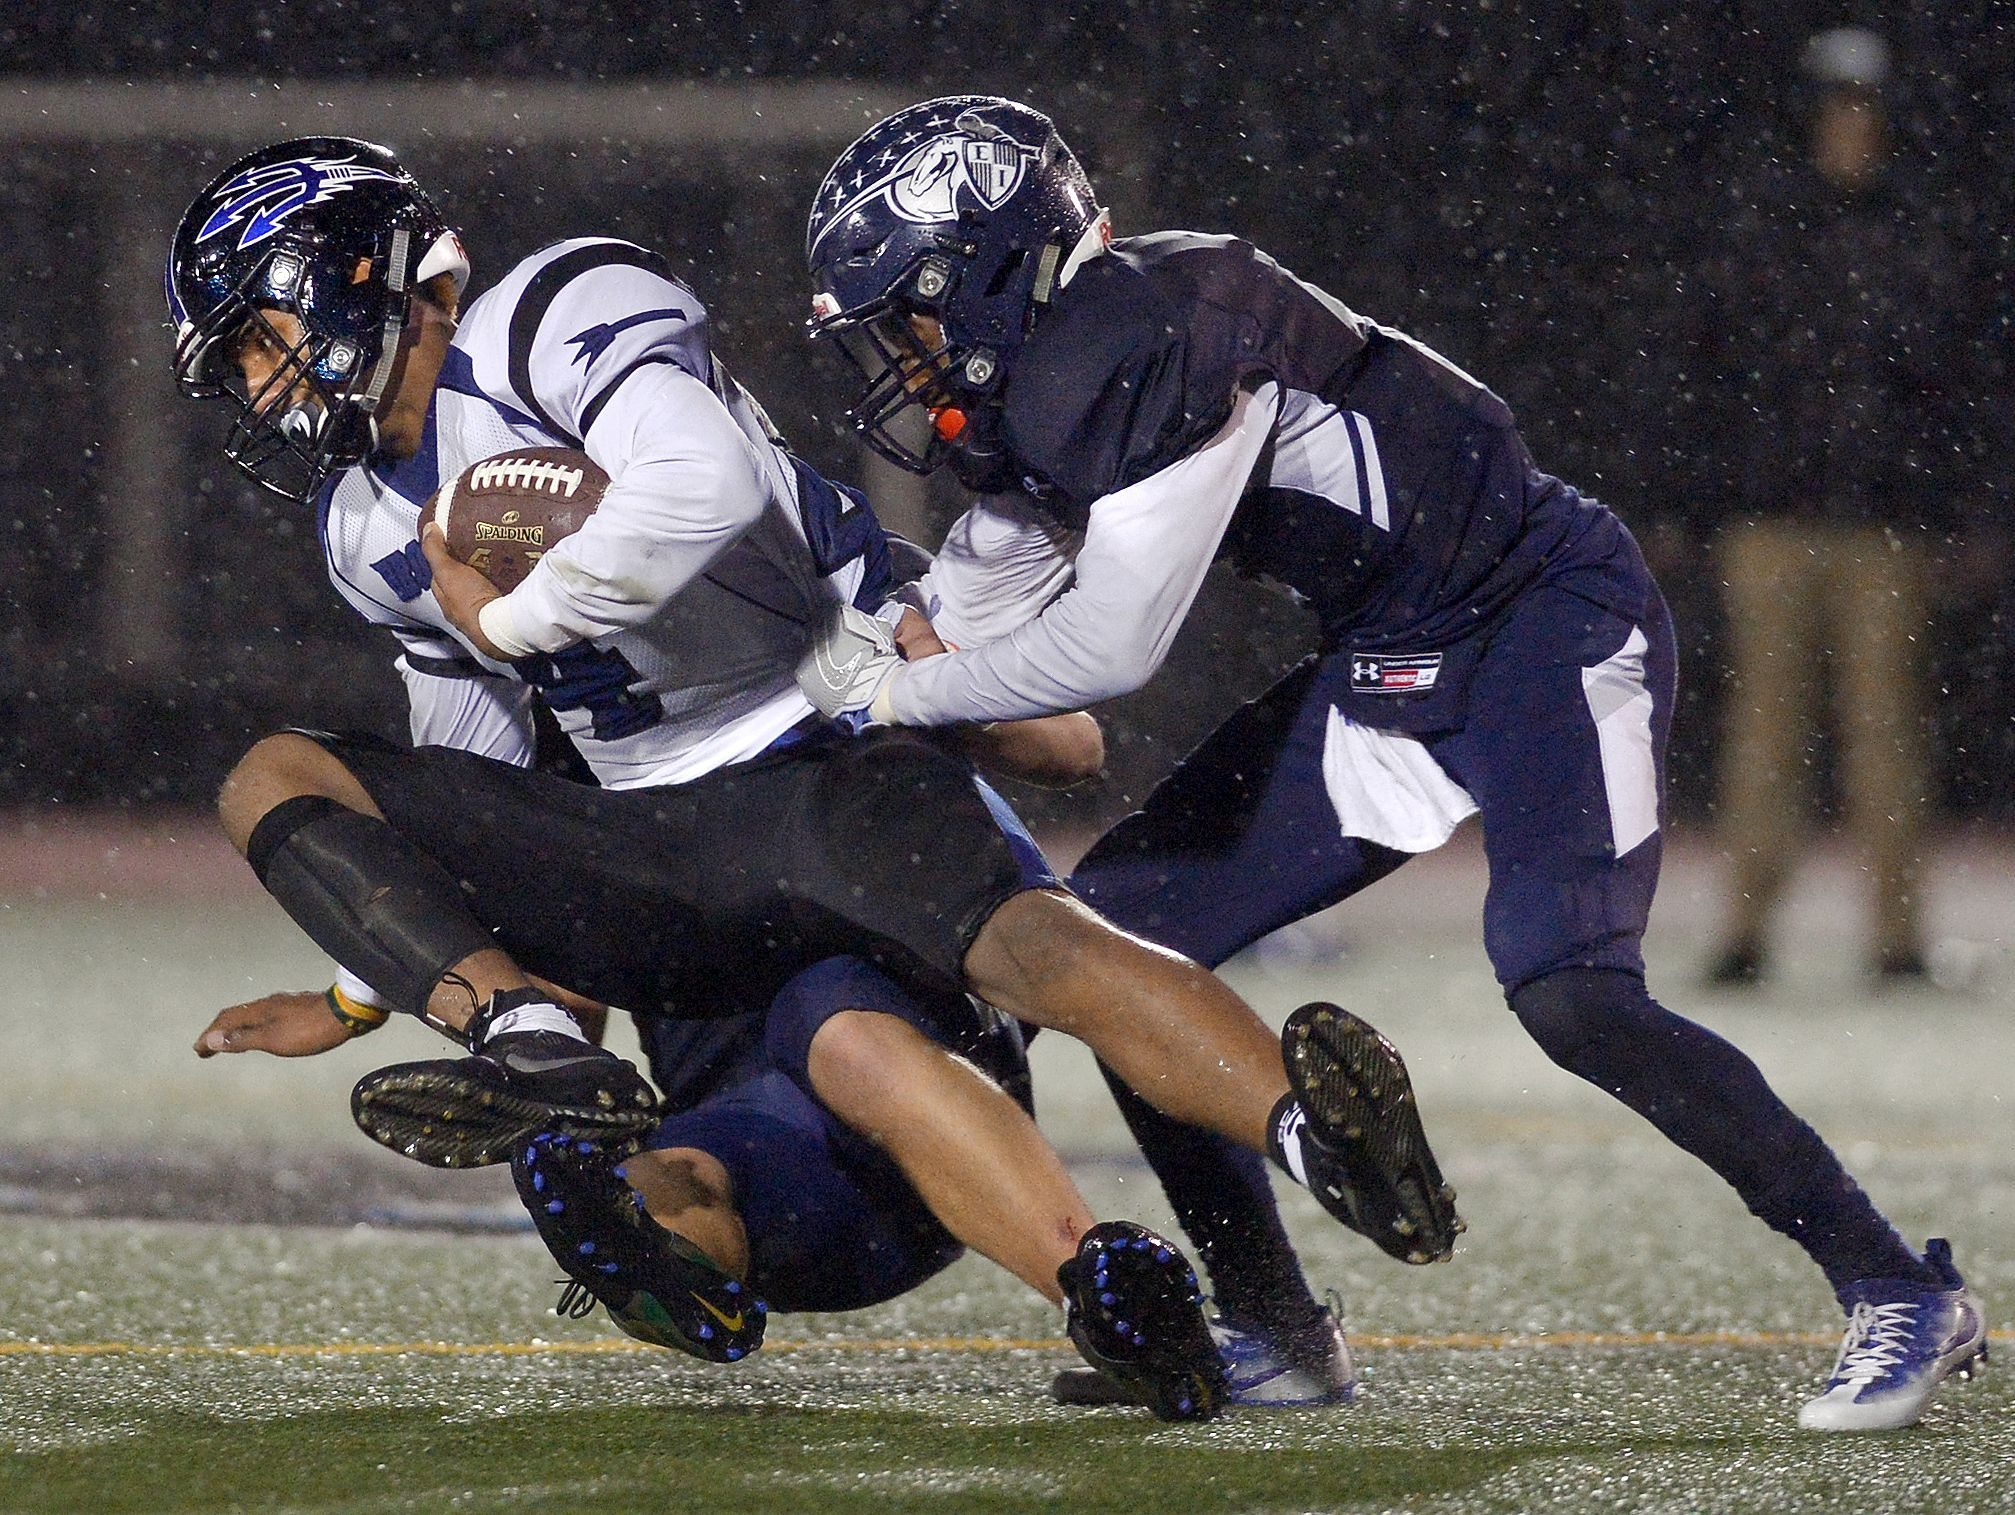 Brockport's Raphael Odey is tackled by Eastridge's Bobby Albritton, right, and Jake Trynoski.